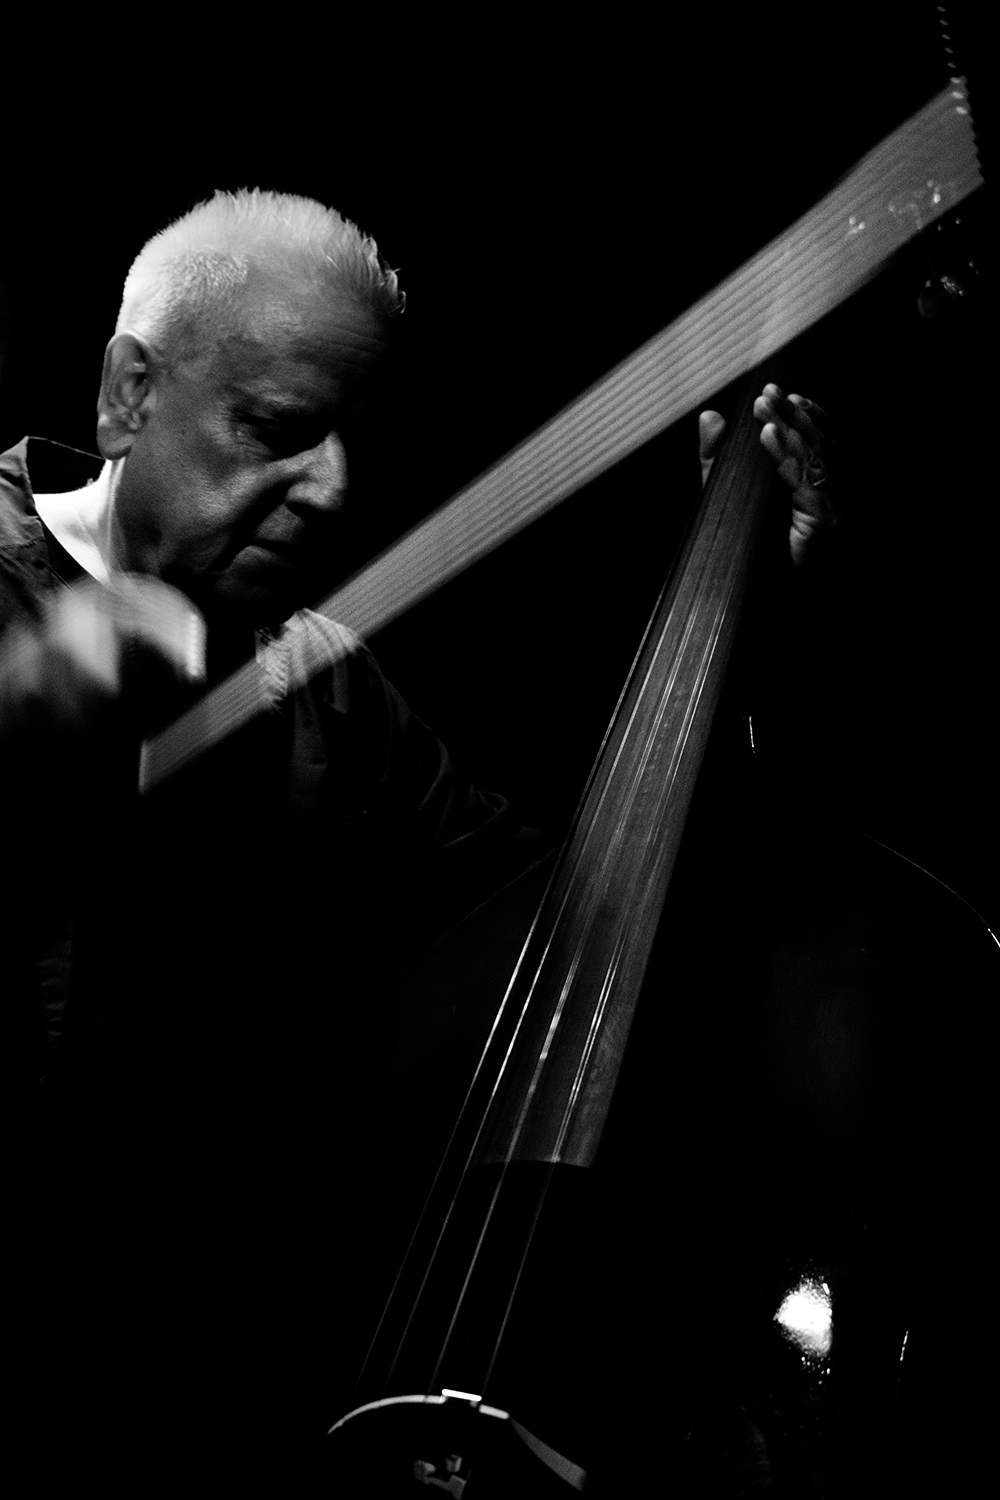 Arnold Dreyblatt & The Orchestra of Excited Strings by Laurent Orseau - Les Ateliers Claus - Brussels, Belgium #11